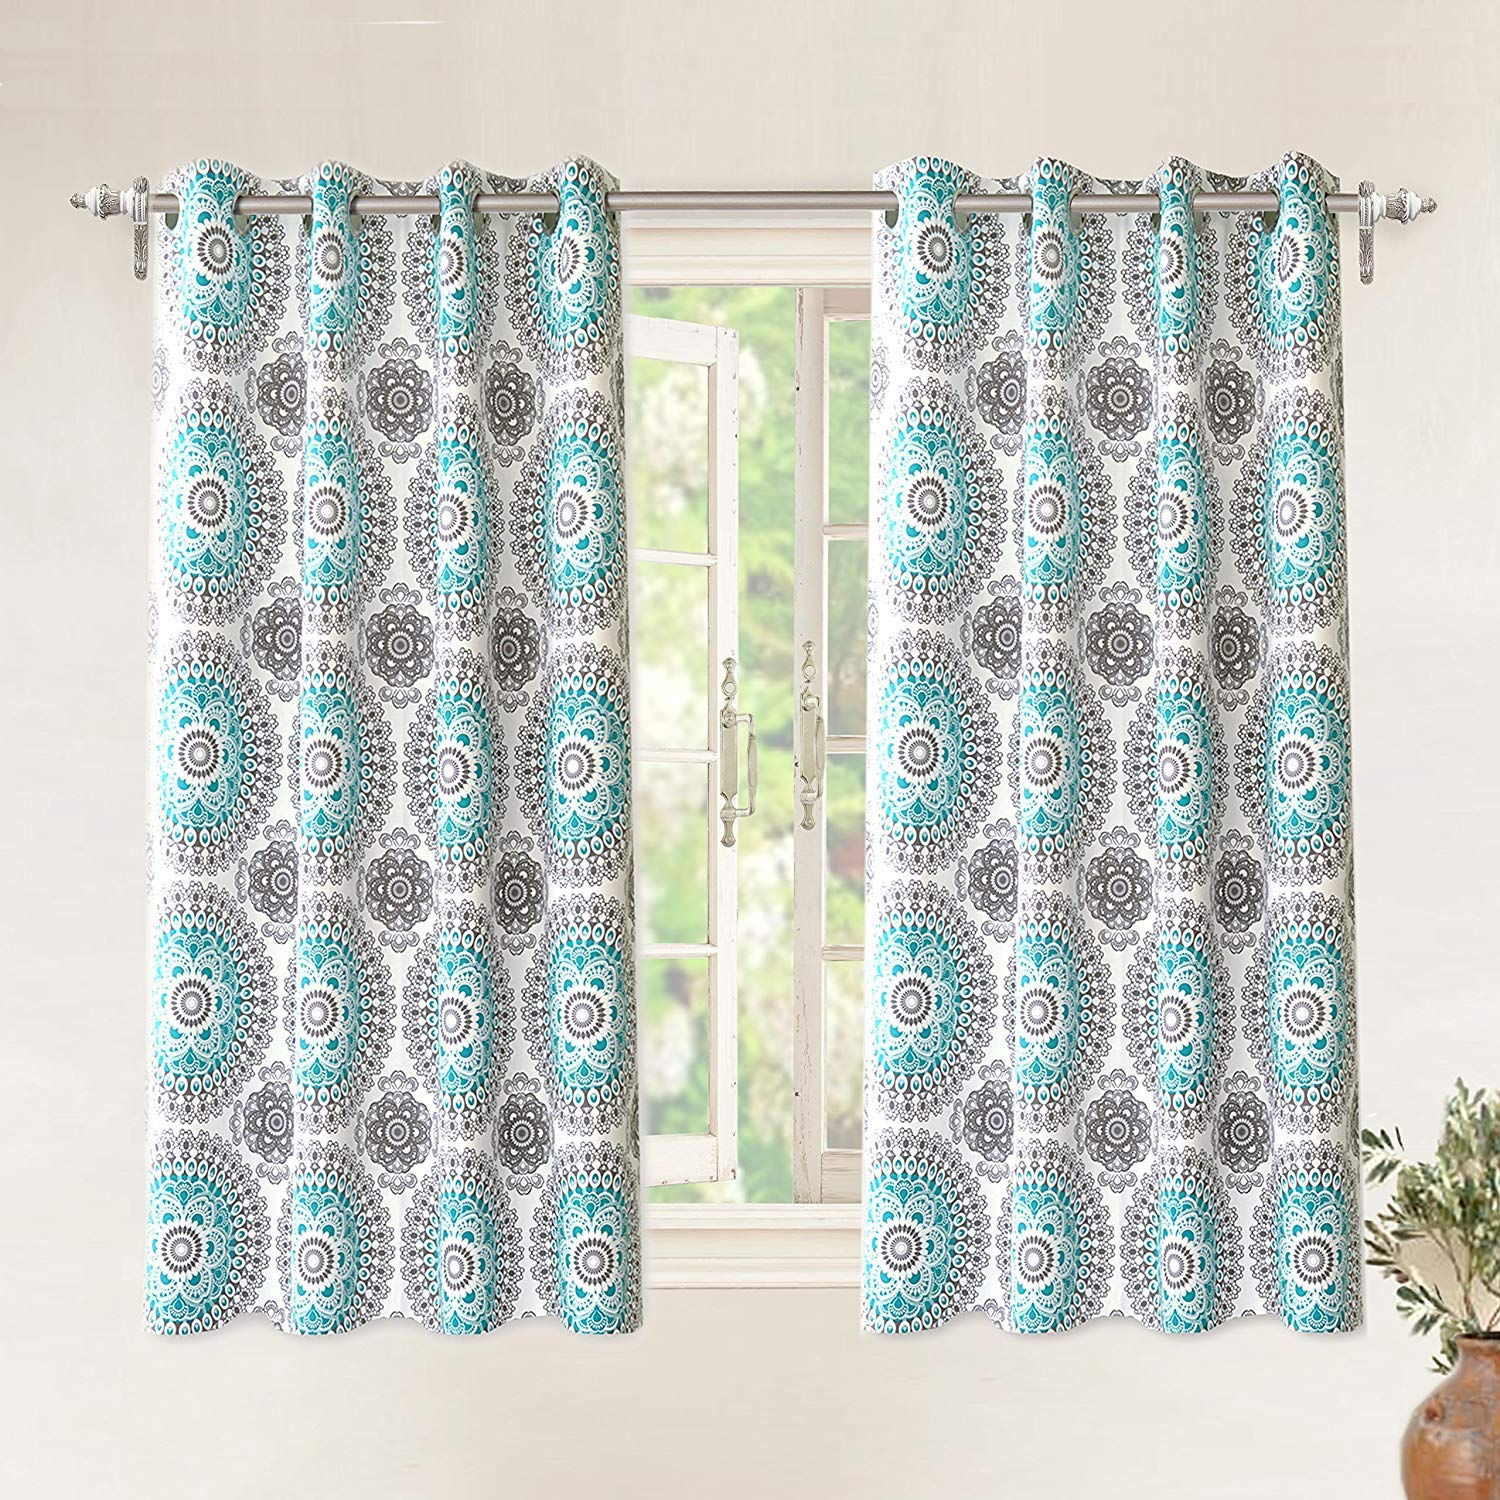 "DriftAway Bella Medallion/Floral Pattern Room Darkening/Thermal Insulated Grommet Window Curtains, Two Panels, Each 52""x63"" (Aqua/Gray)"